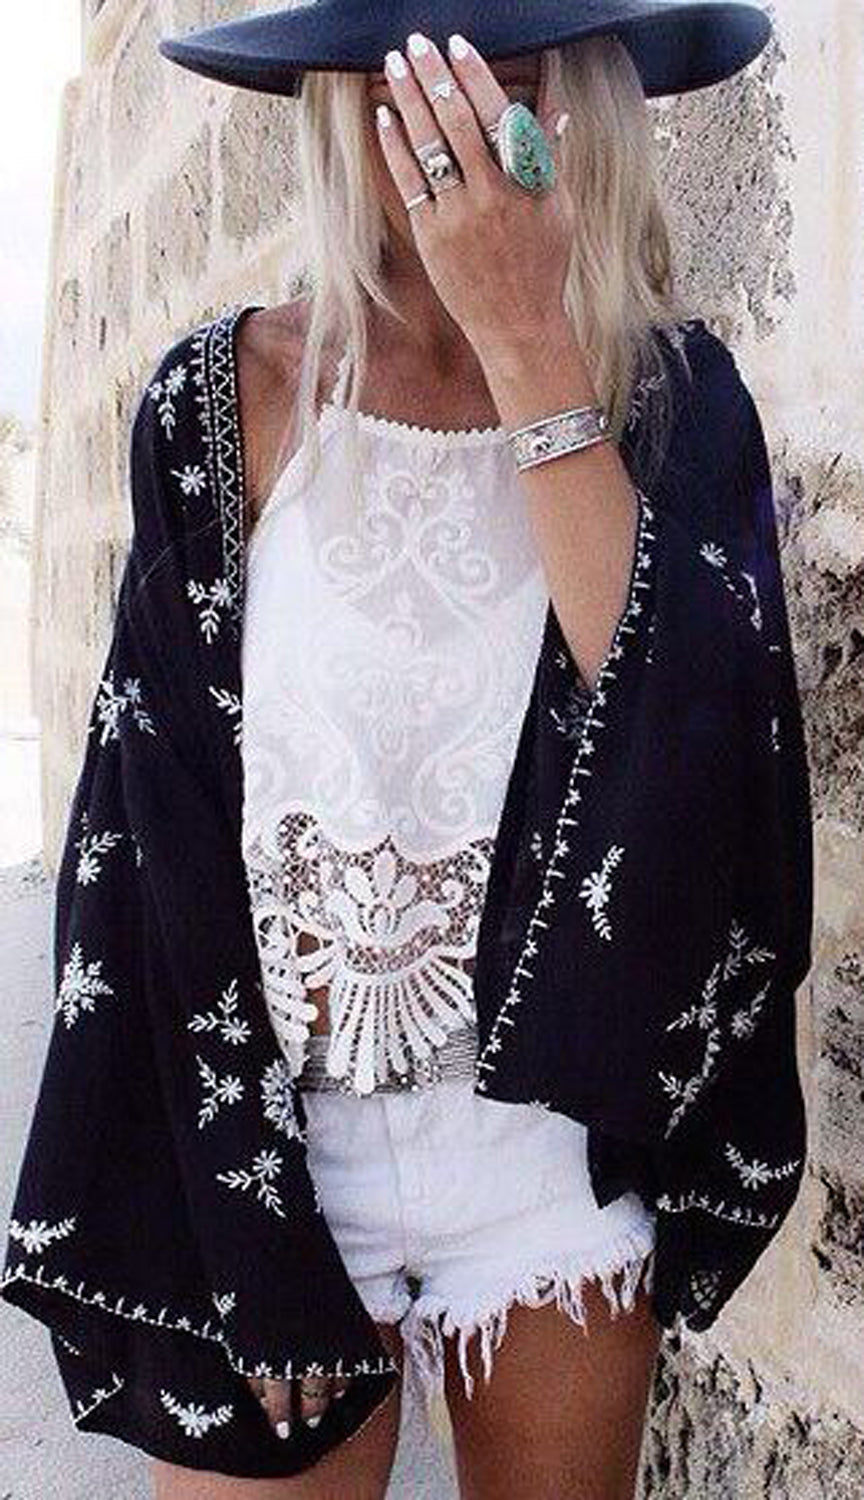 Womens Modern Boho Bohemian Outfit Ideas - Silver Turquoise Statements Rings - Black Floral Lace Poncho - Fedora - MyBodiArt.com